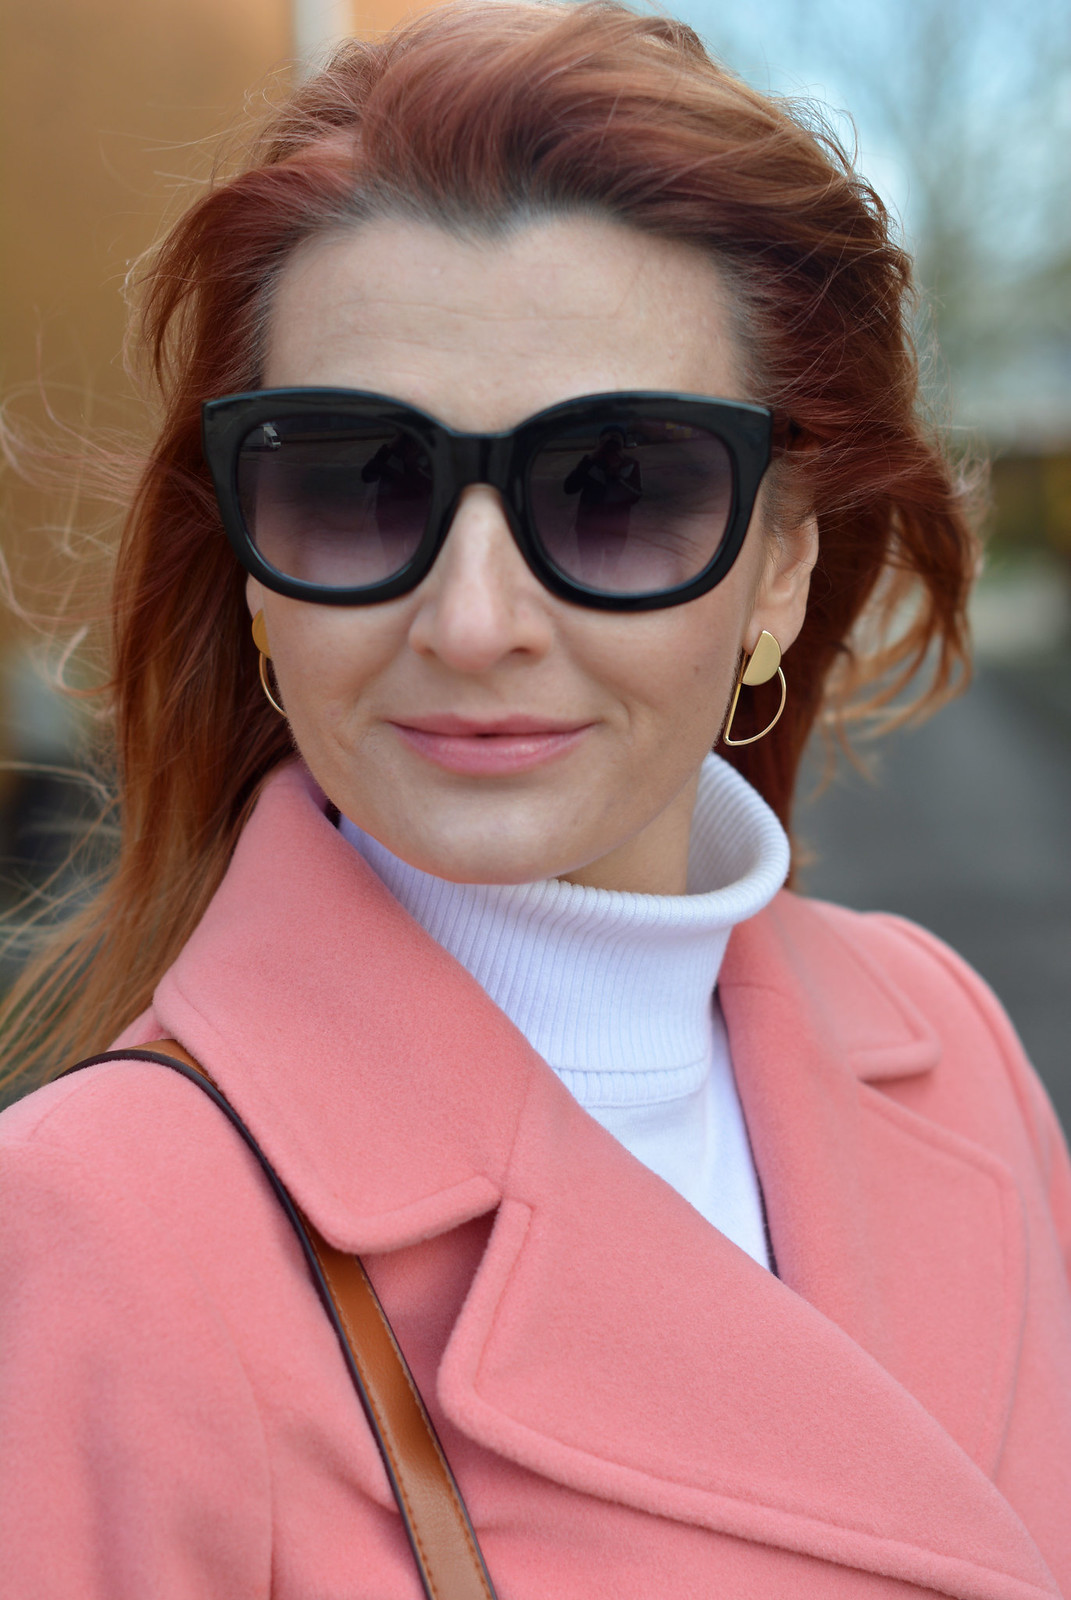 Winter style: Peach coat with white roll neck | Not Dressed As Lamb